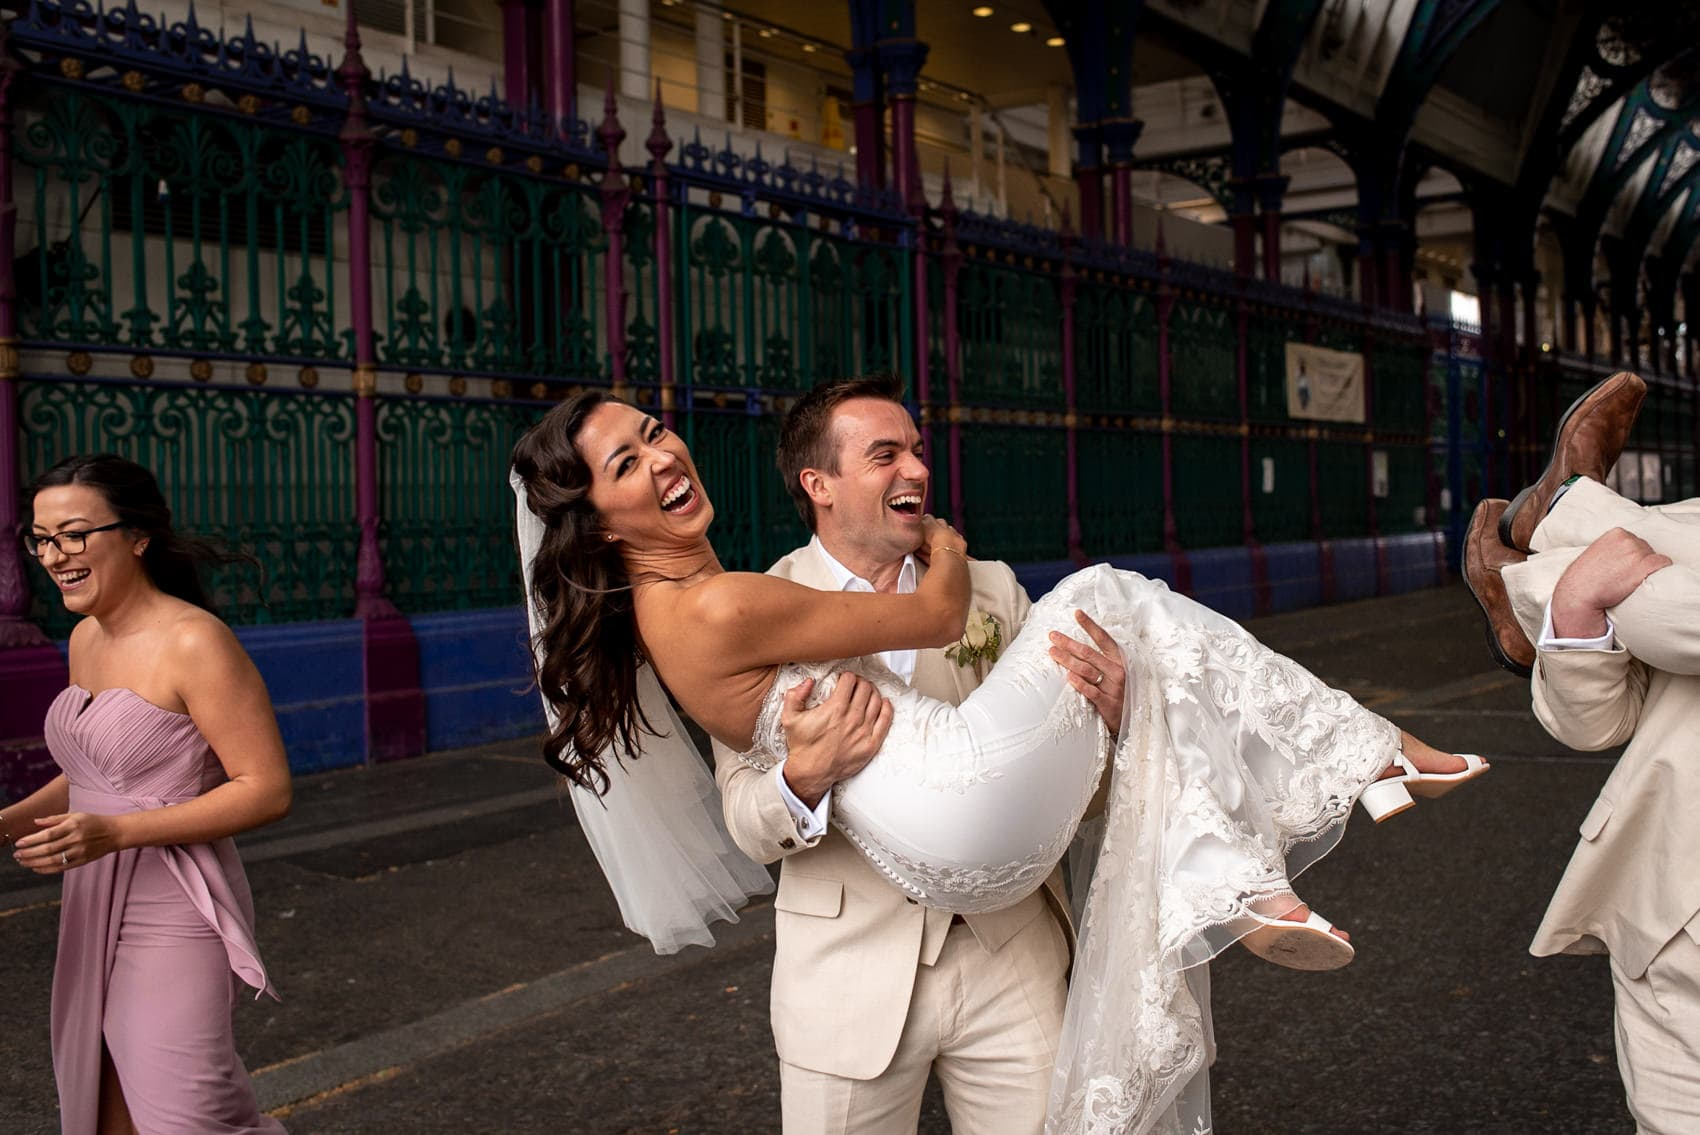 Groom lifting up his bride and laughing in Smithfields Market